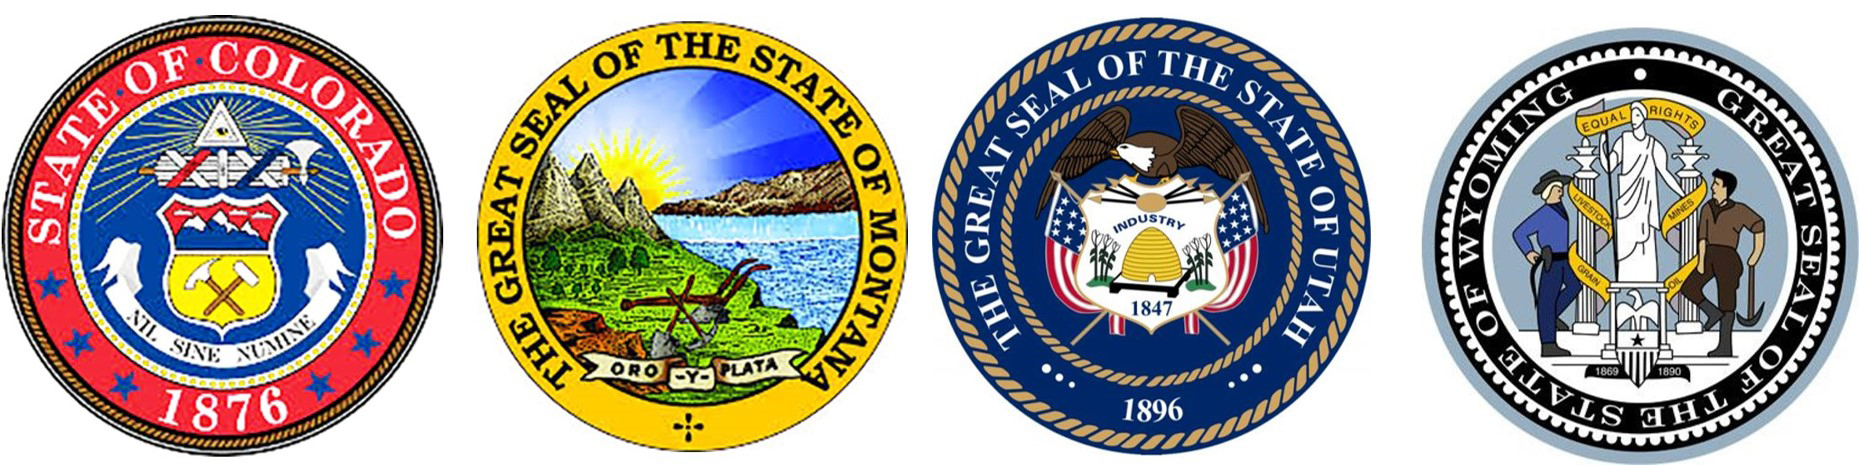 State Seals of Colorado, Montana, Utah and Wyoming